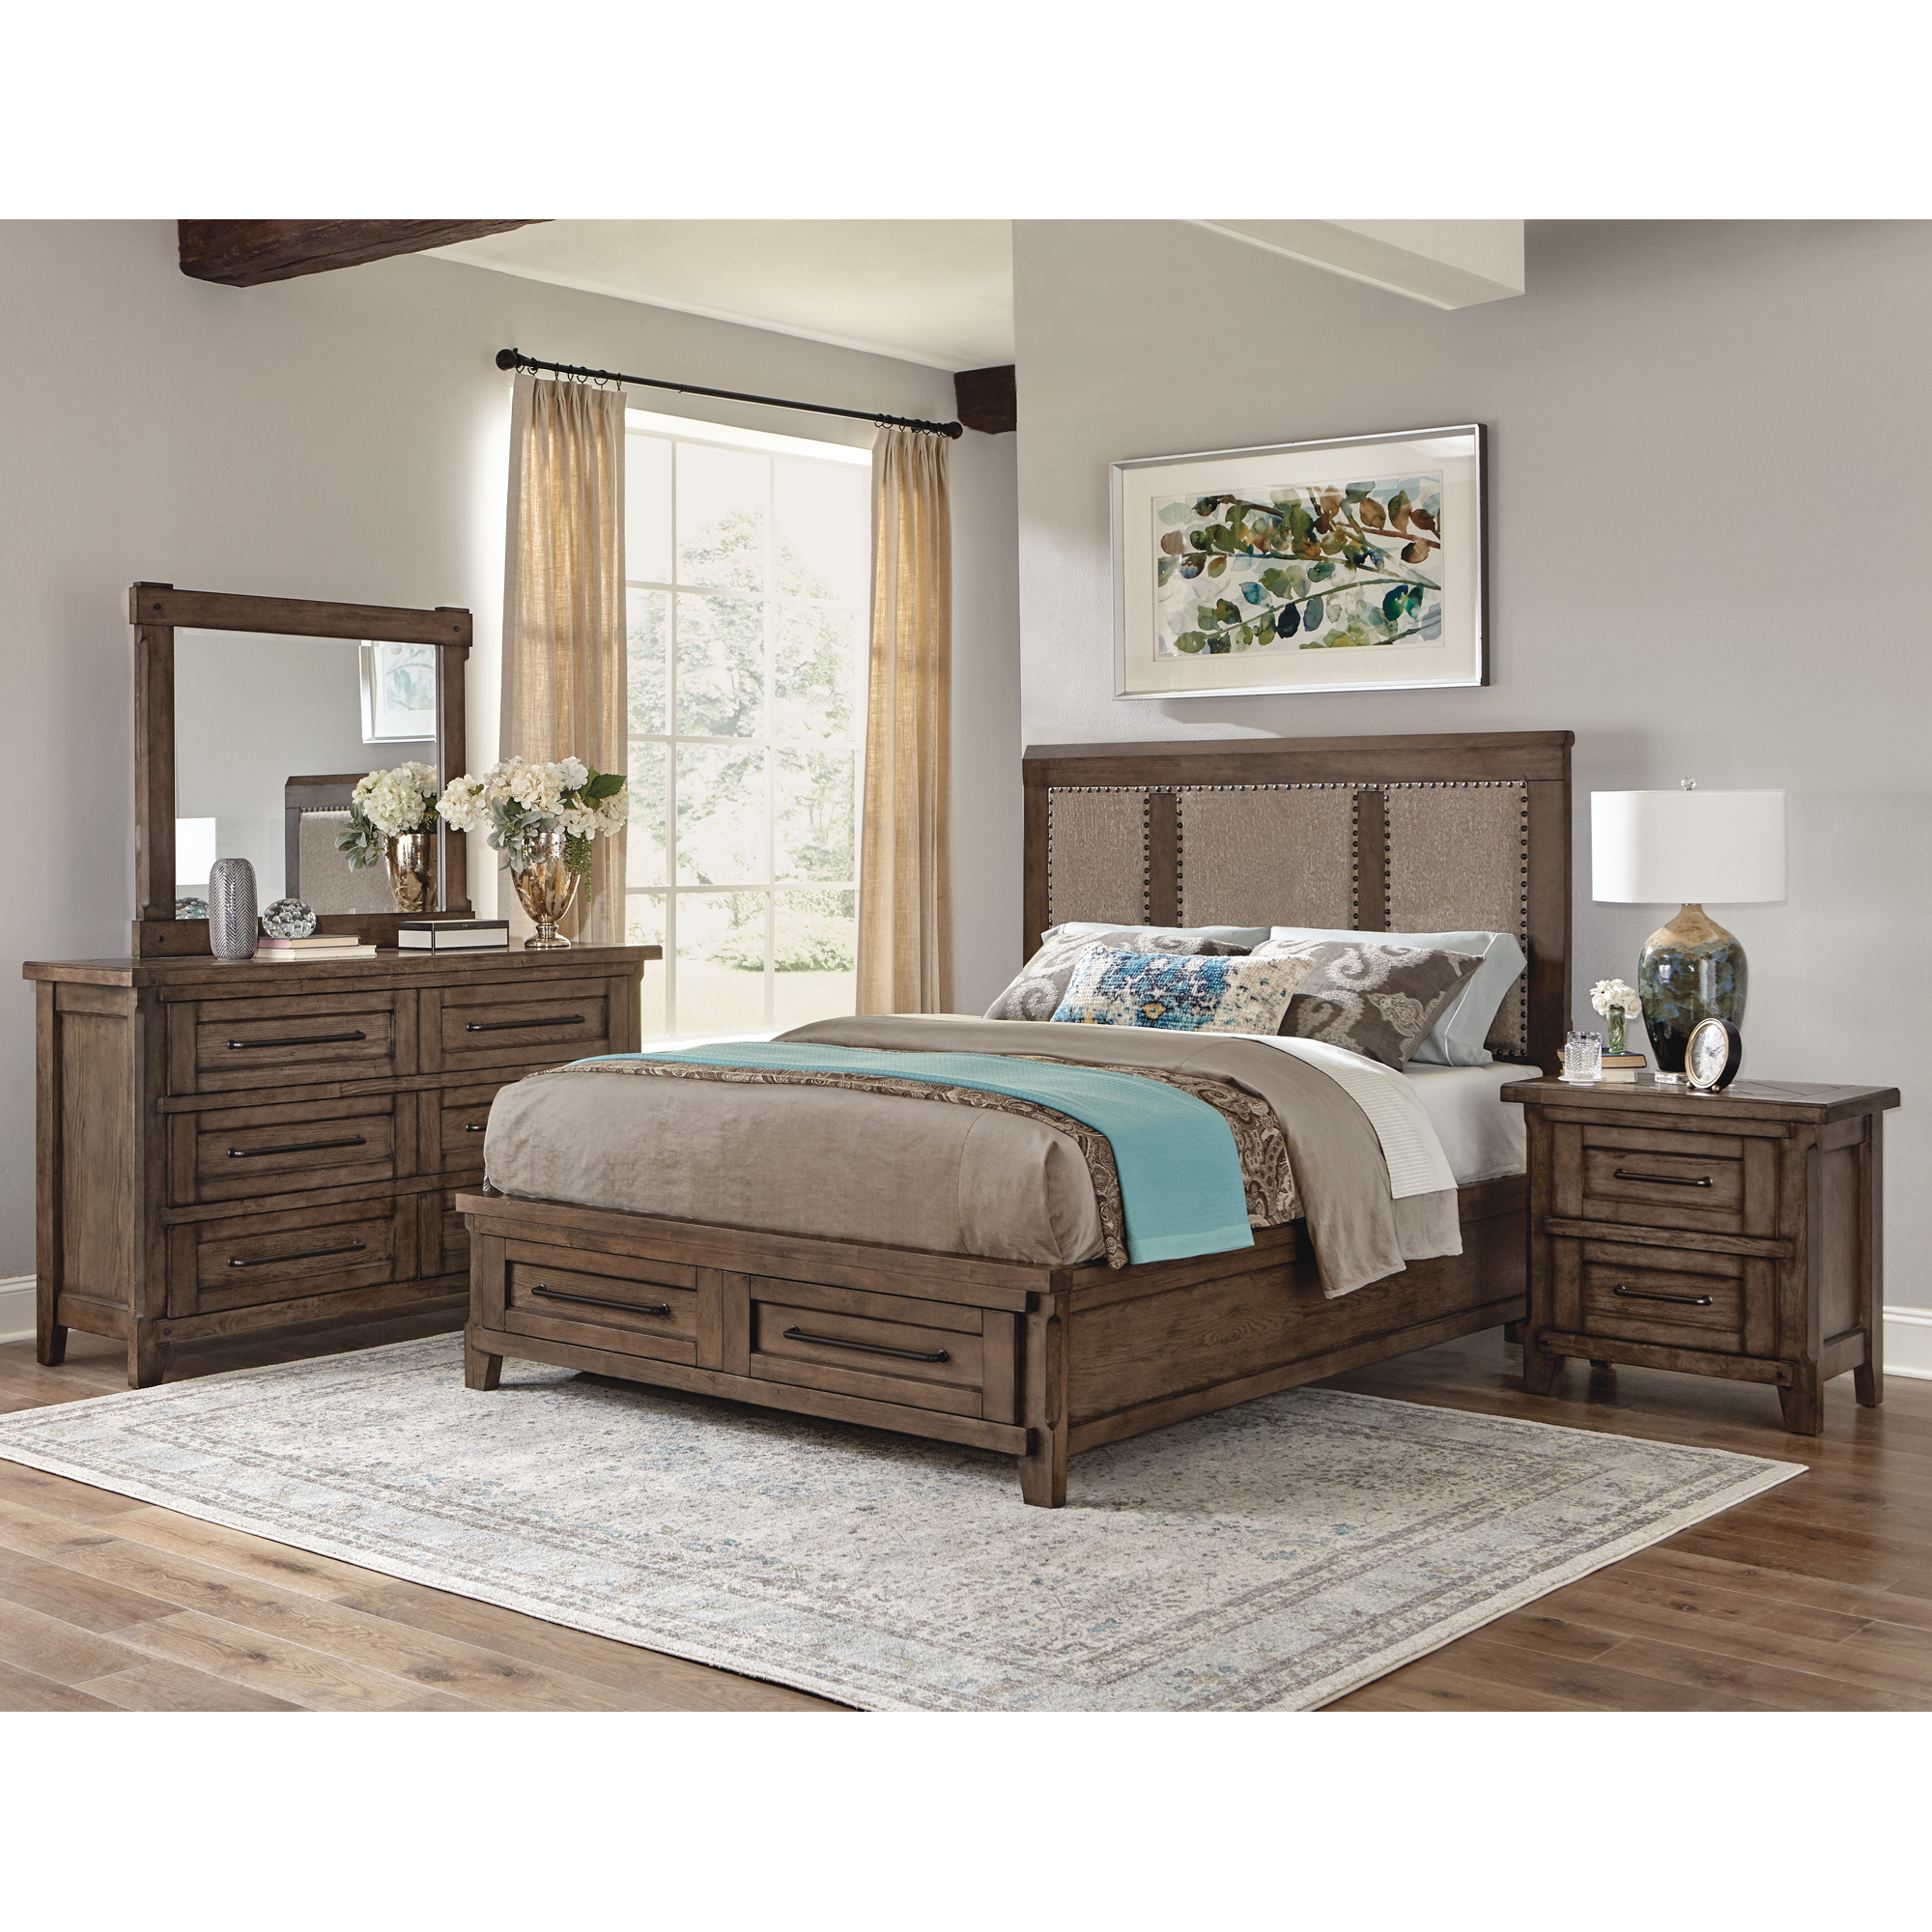 Davis Direct | Patches Gray Brown King Upholstered Storage 4 Piece Room Group Bedroom Set